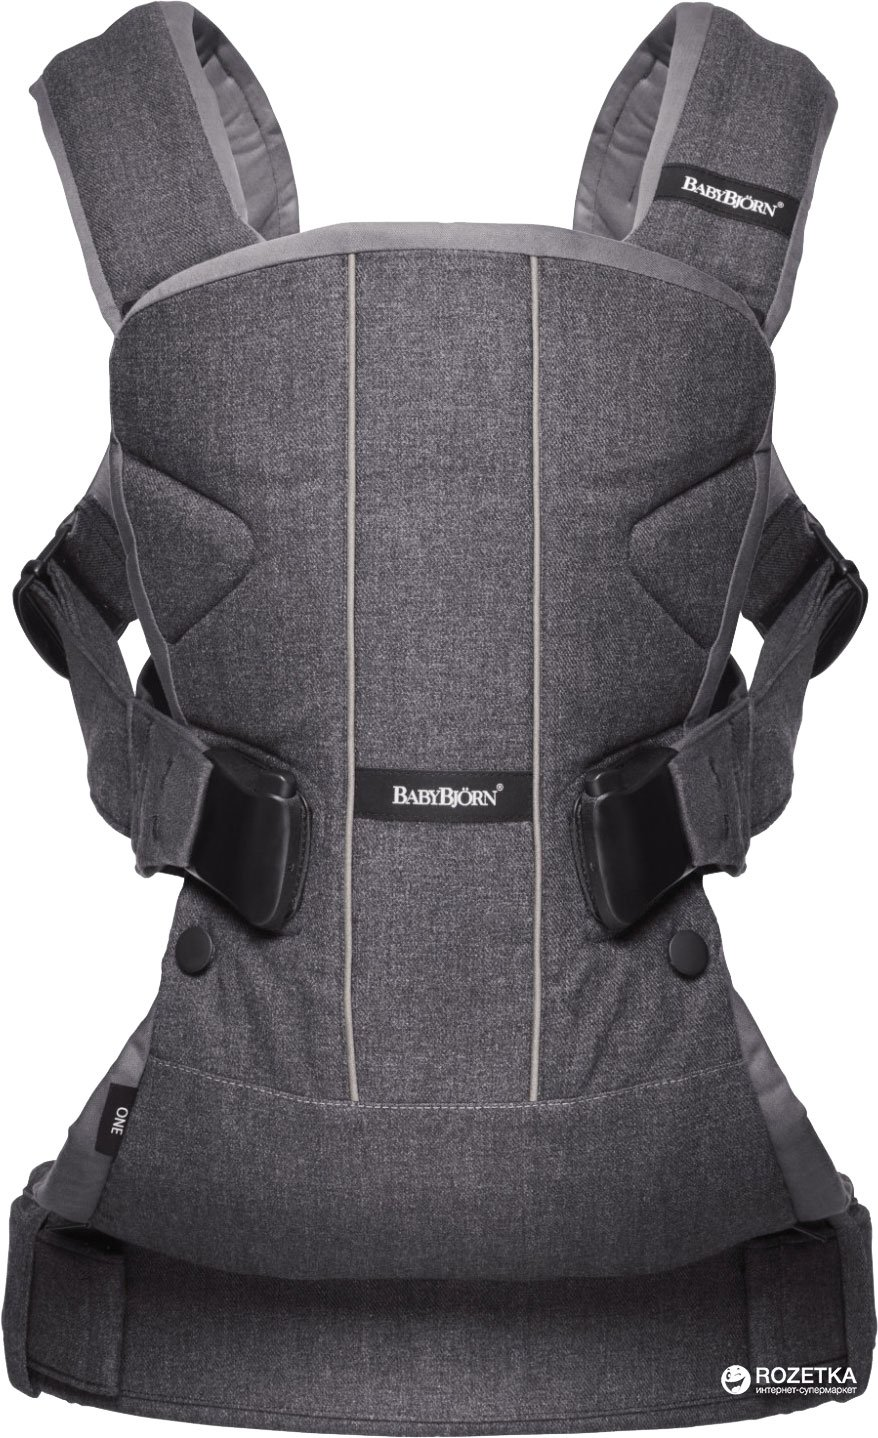 Ķengursoma BabyBjorn Baby Carrier ONE Cotton Mix Denim grey/Dark grey 093094